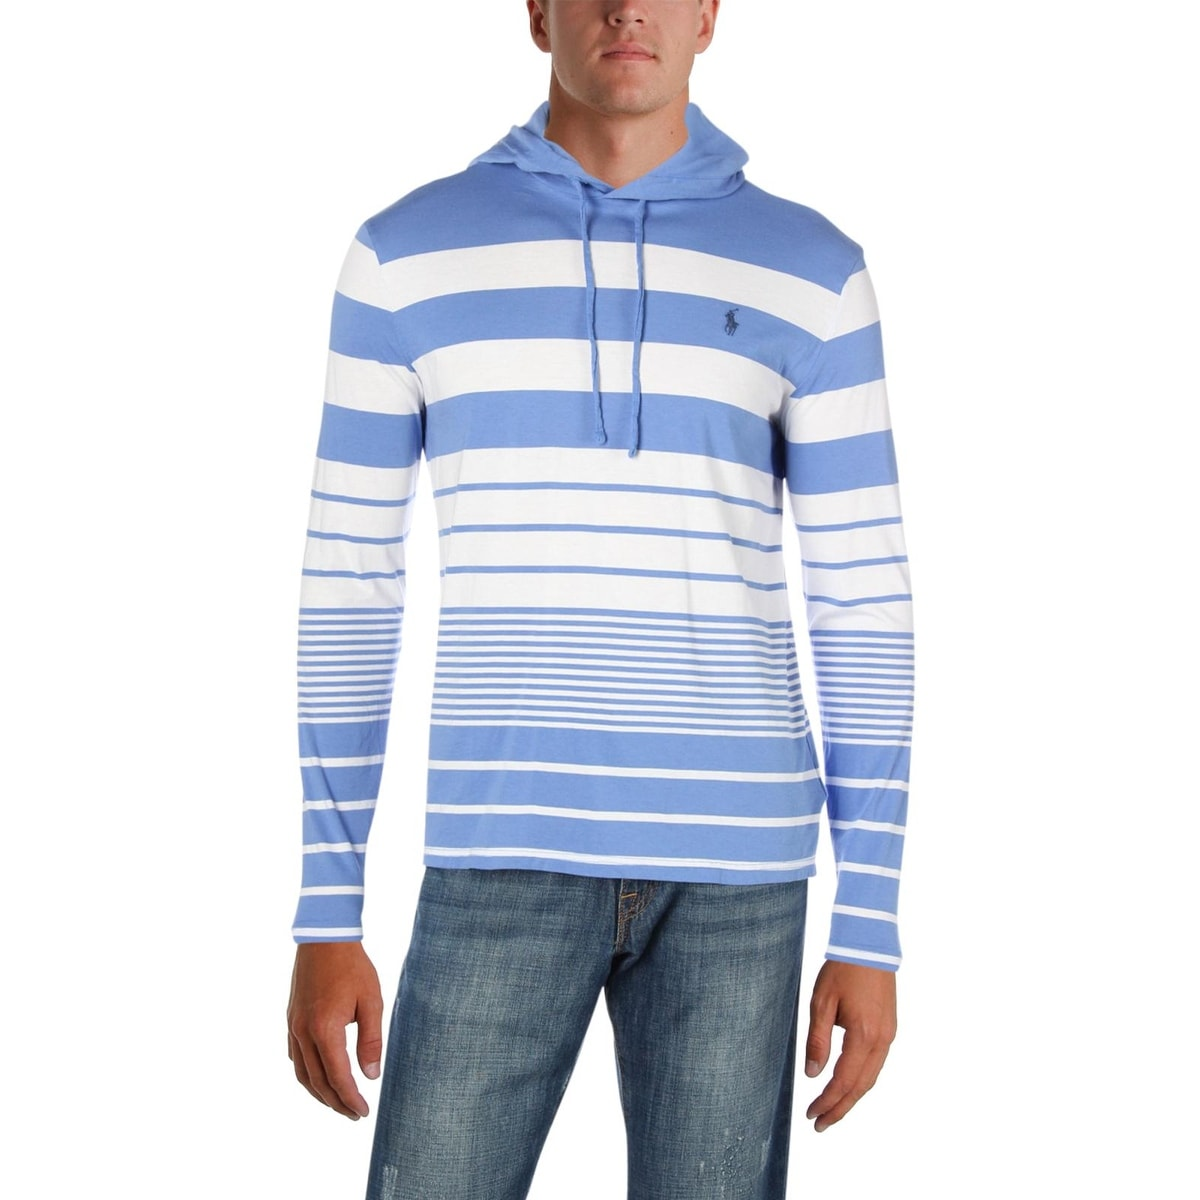 f0dfba088 Shop Polo Ralph Lauren Mens Hoodie Striped Lightweight - M - Free Shipping  On Orders Over  45 - Overstock - 25681237